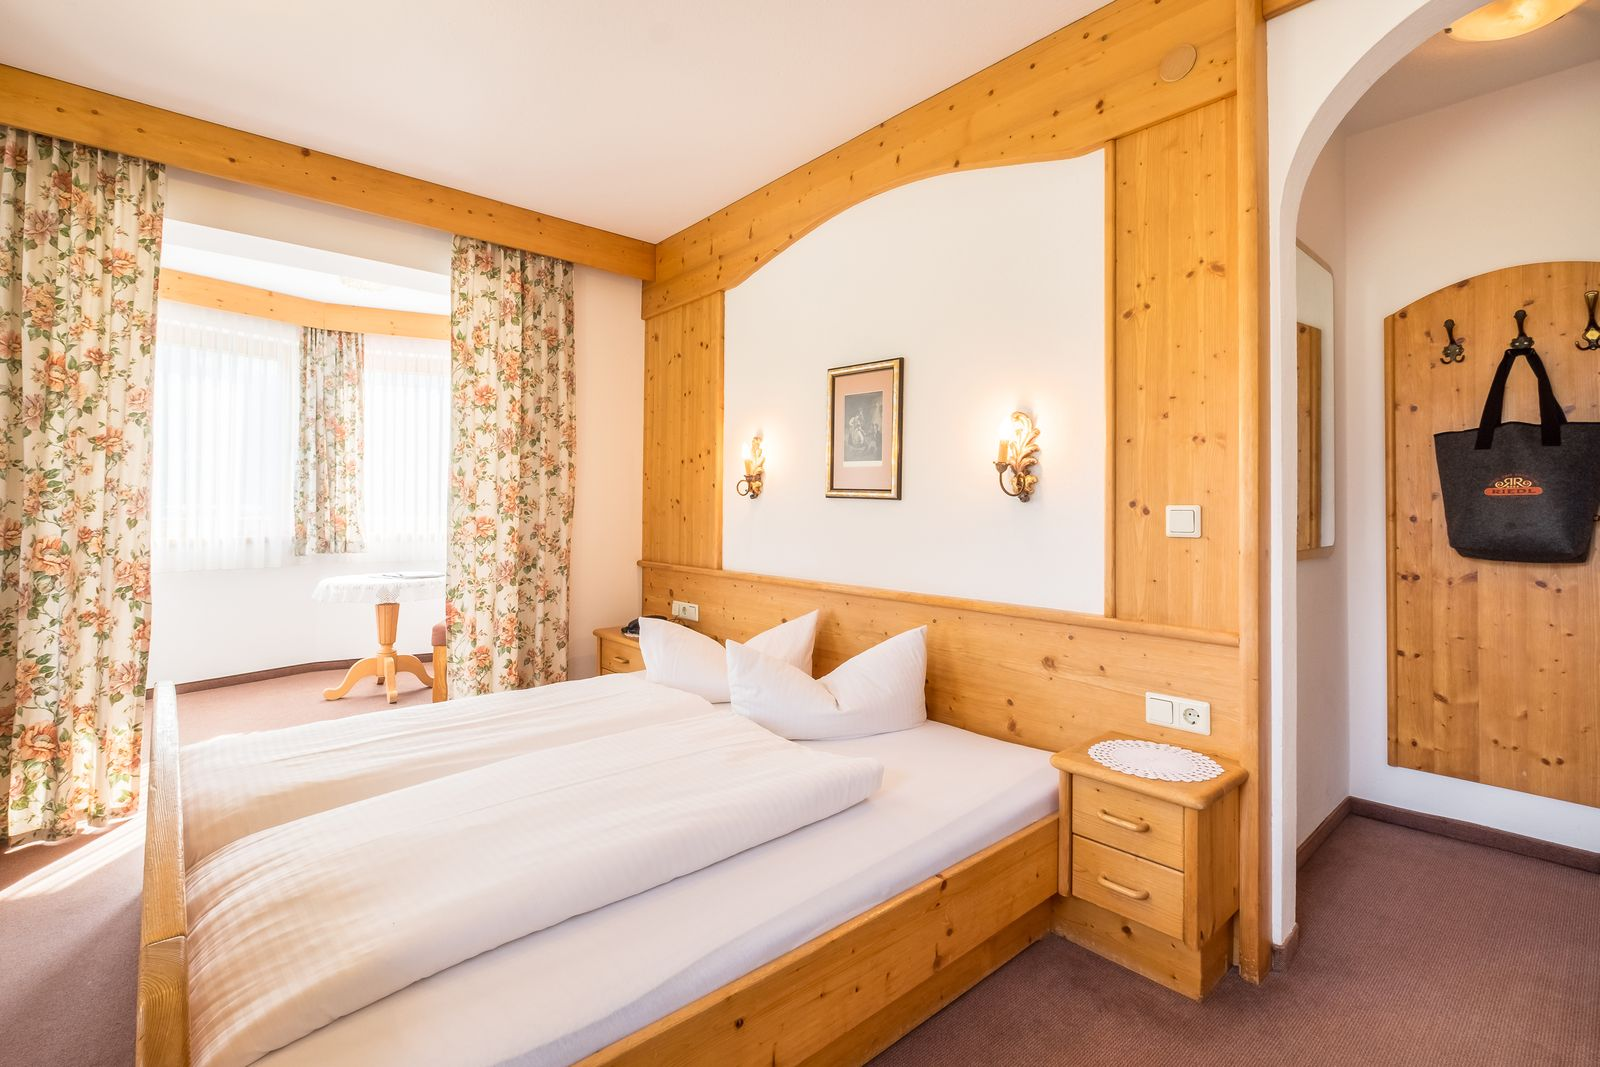 Family Rooms 4 Sterne Hotel Riedl